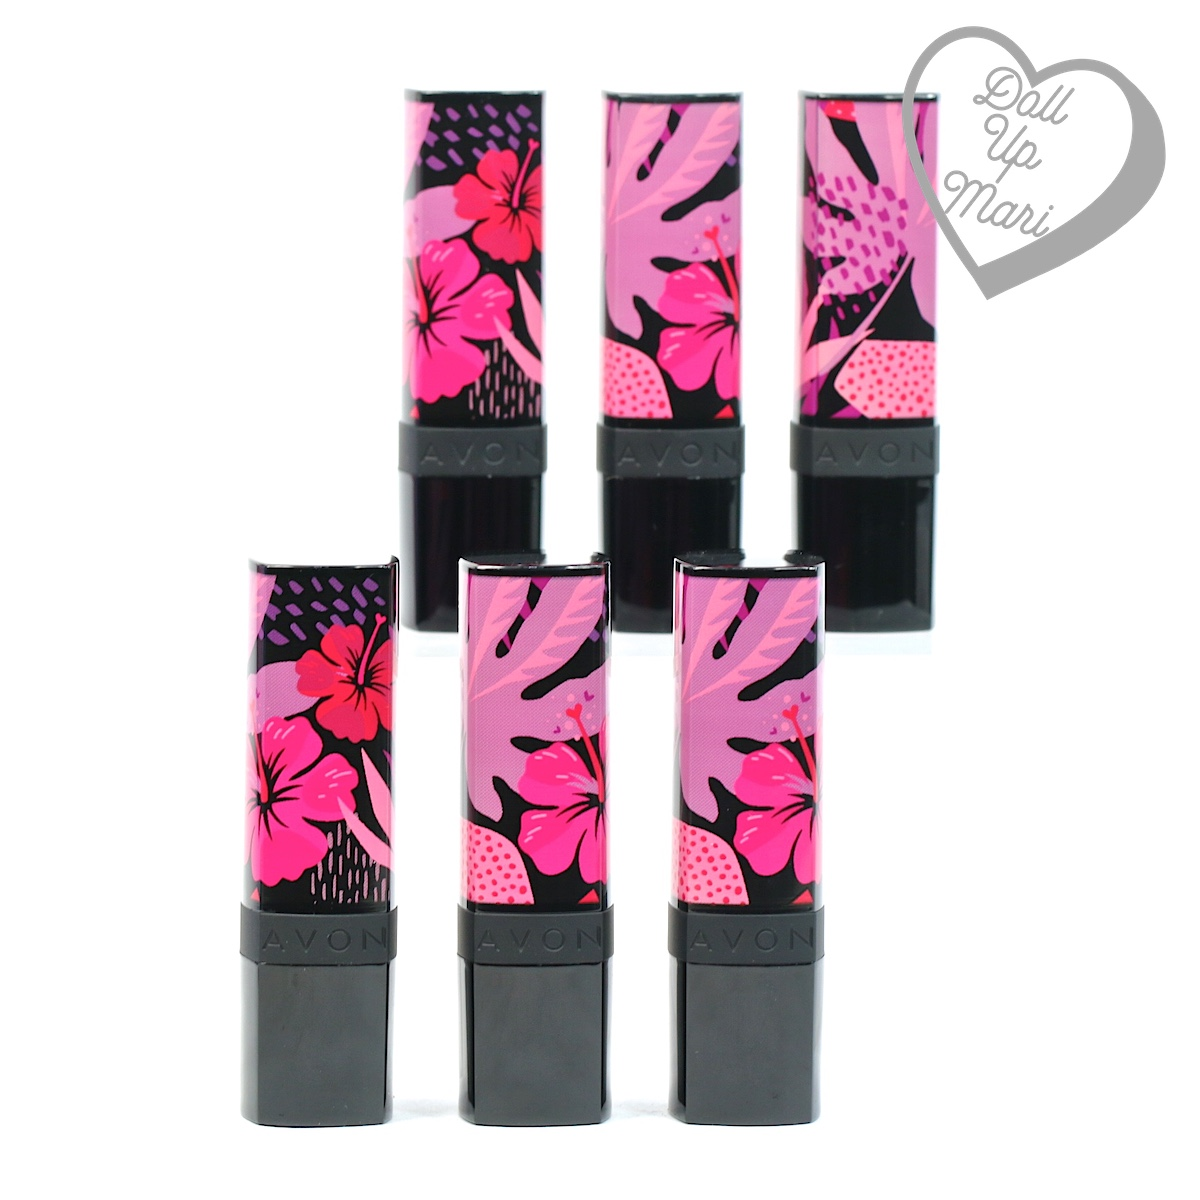 AVON Floral Wonderland Lipstick Collection Packaging